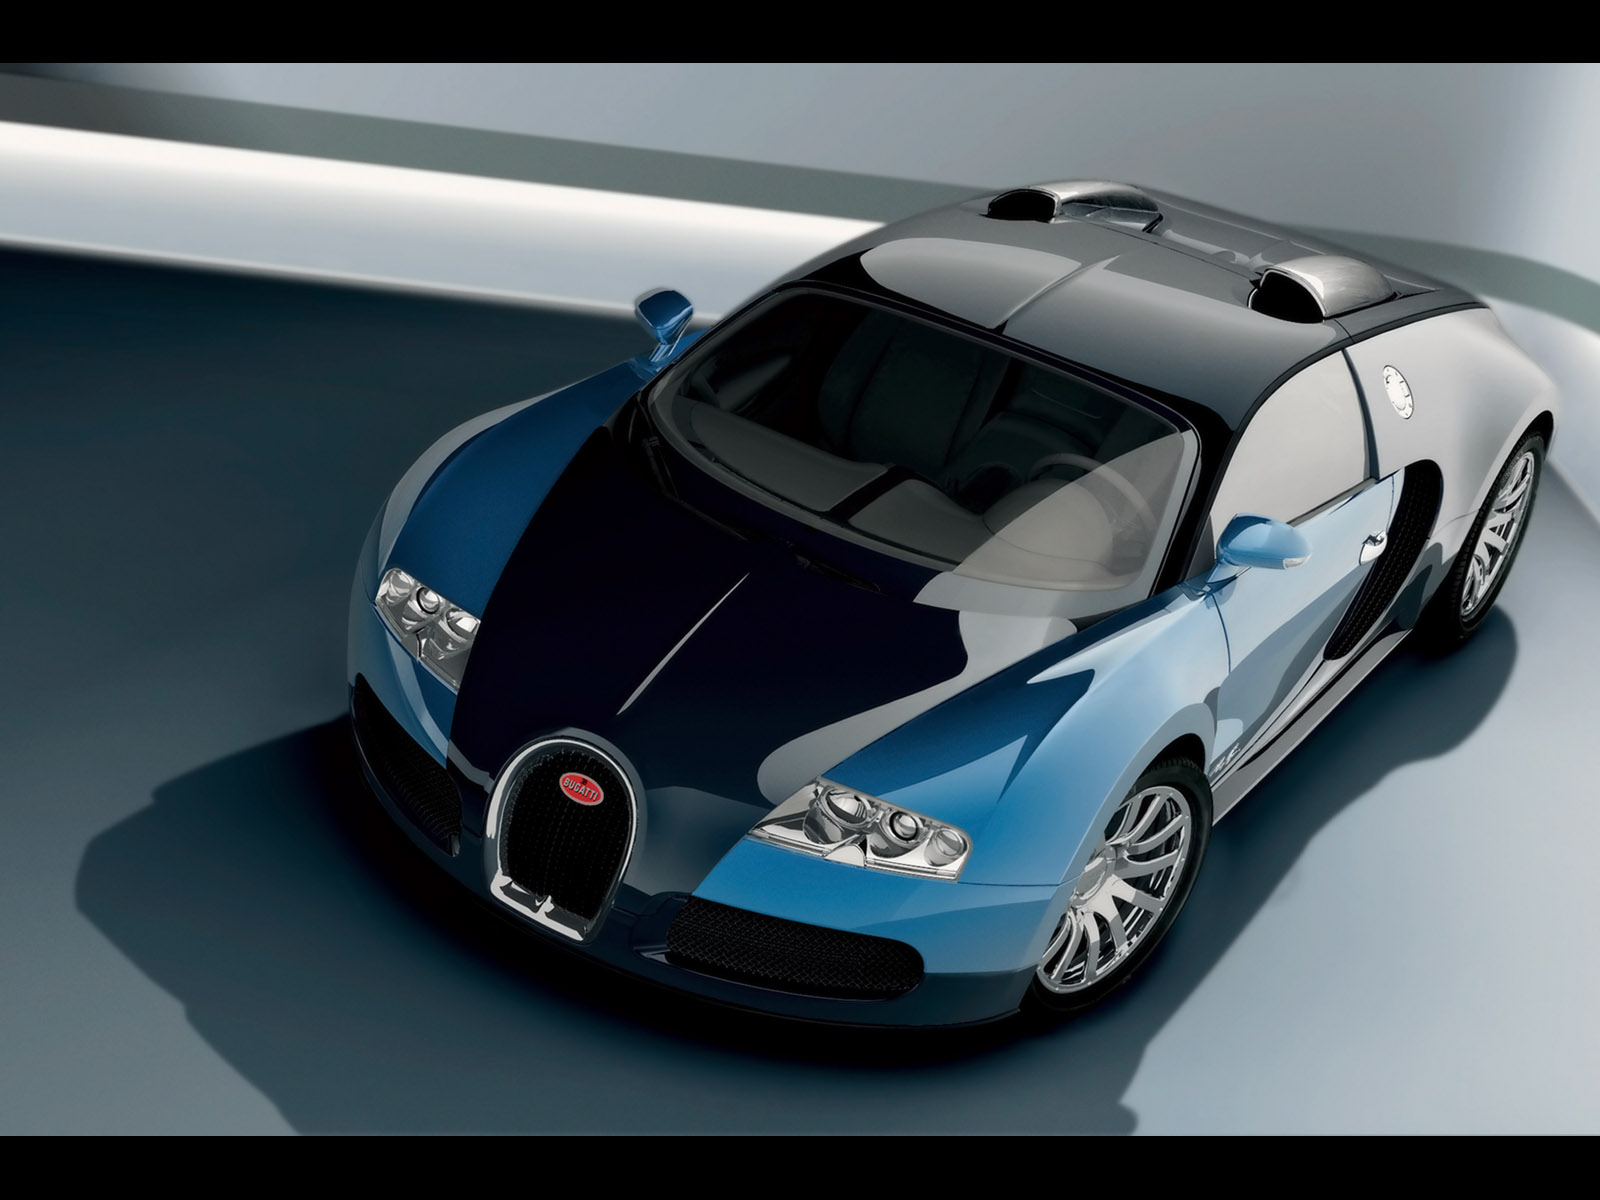 bugatti veyron 1600x900 car wallpaper. Black Bedroom Furniture Sets. Home Design Ideas